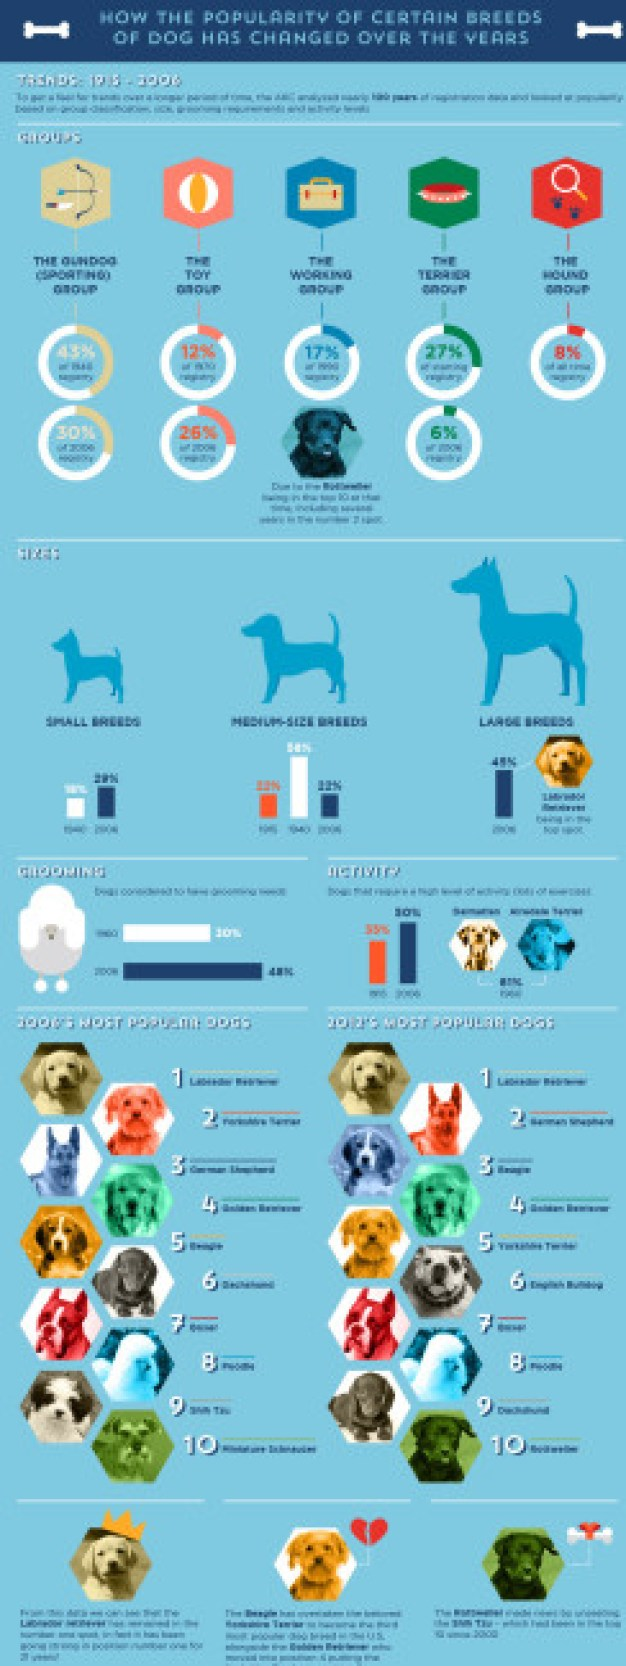 Dog Breed Popularity Infographic